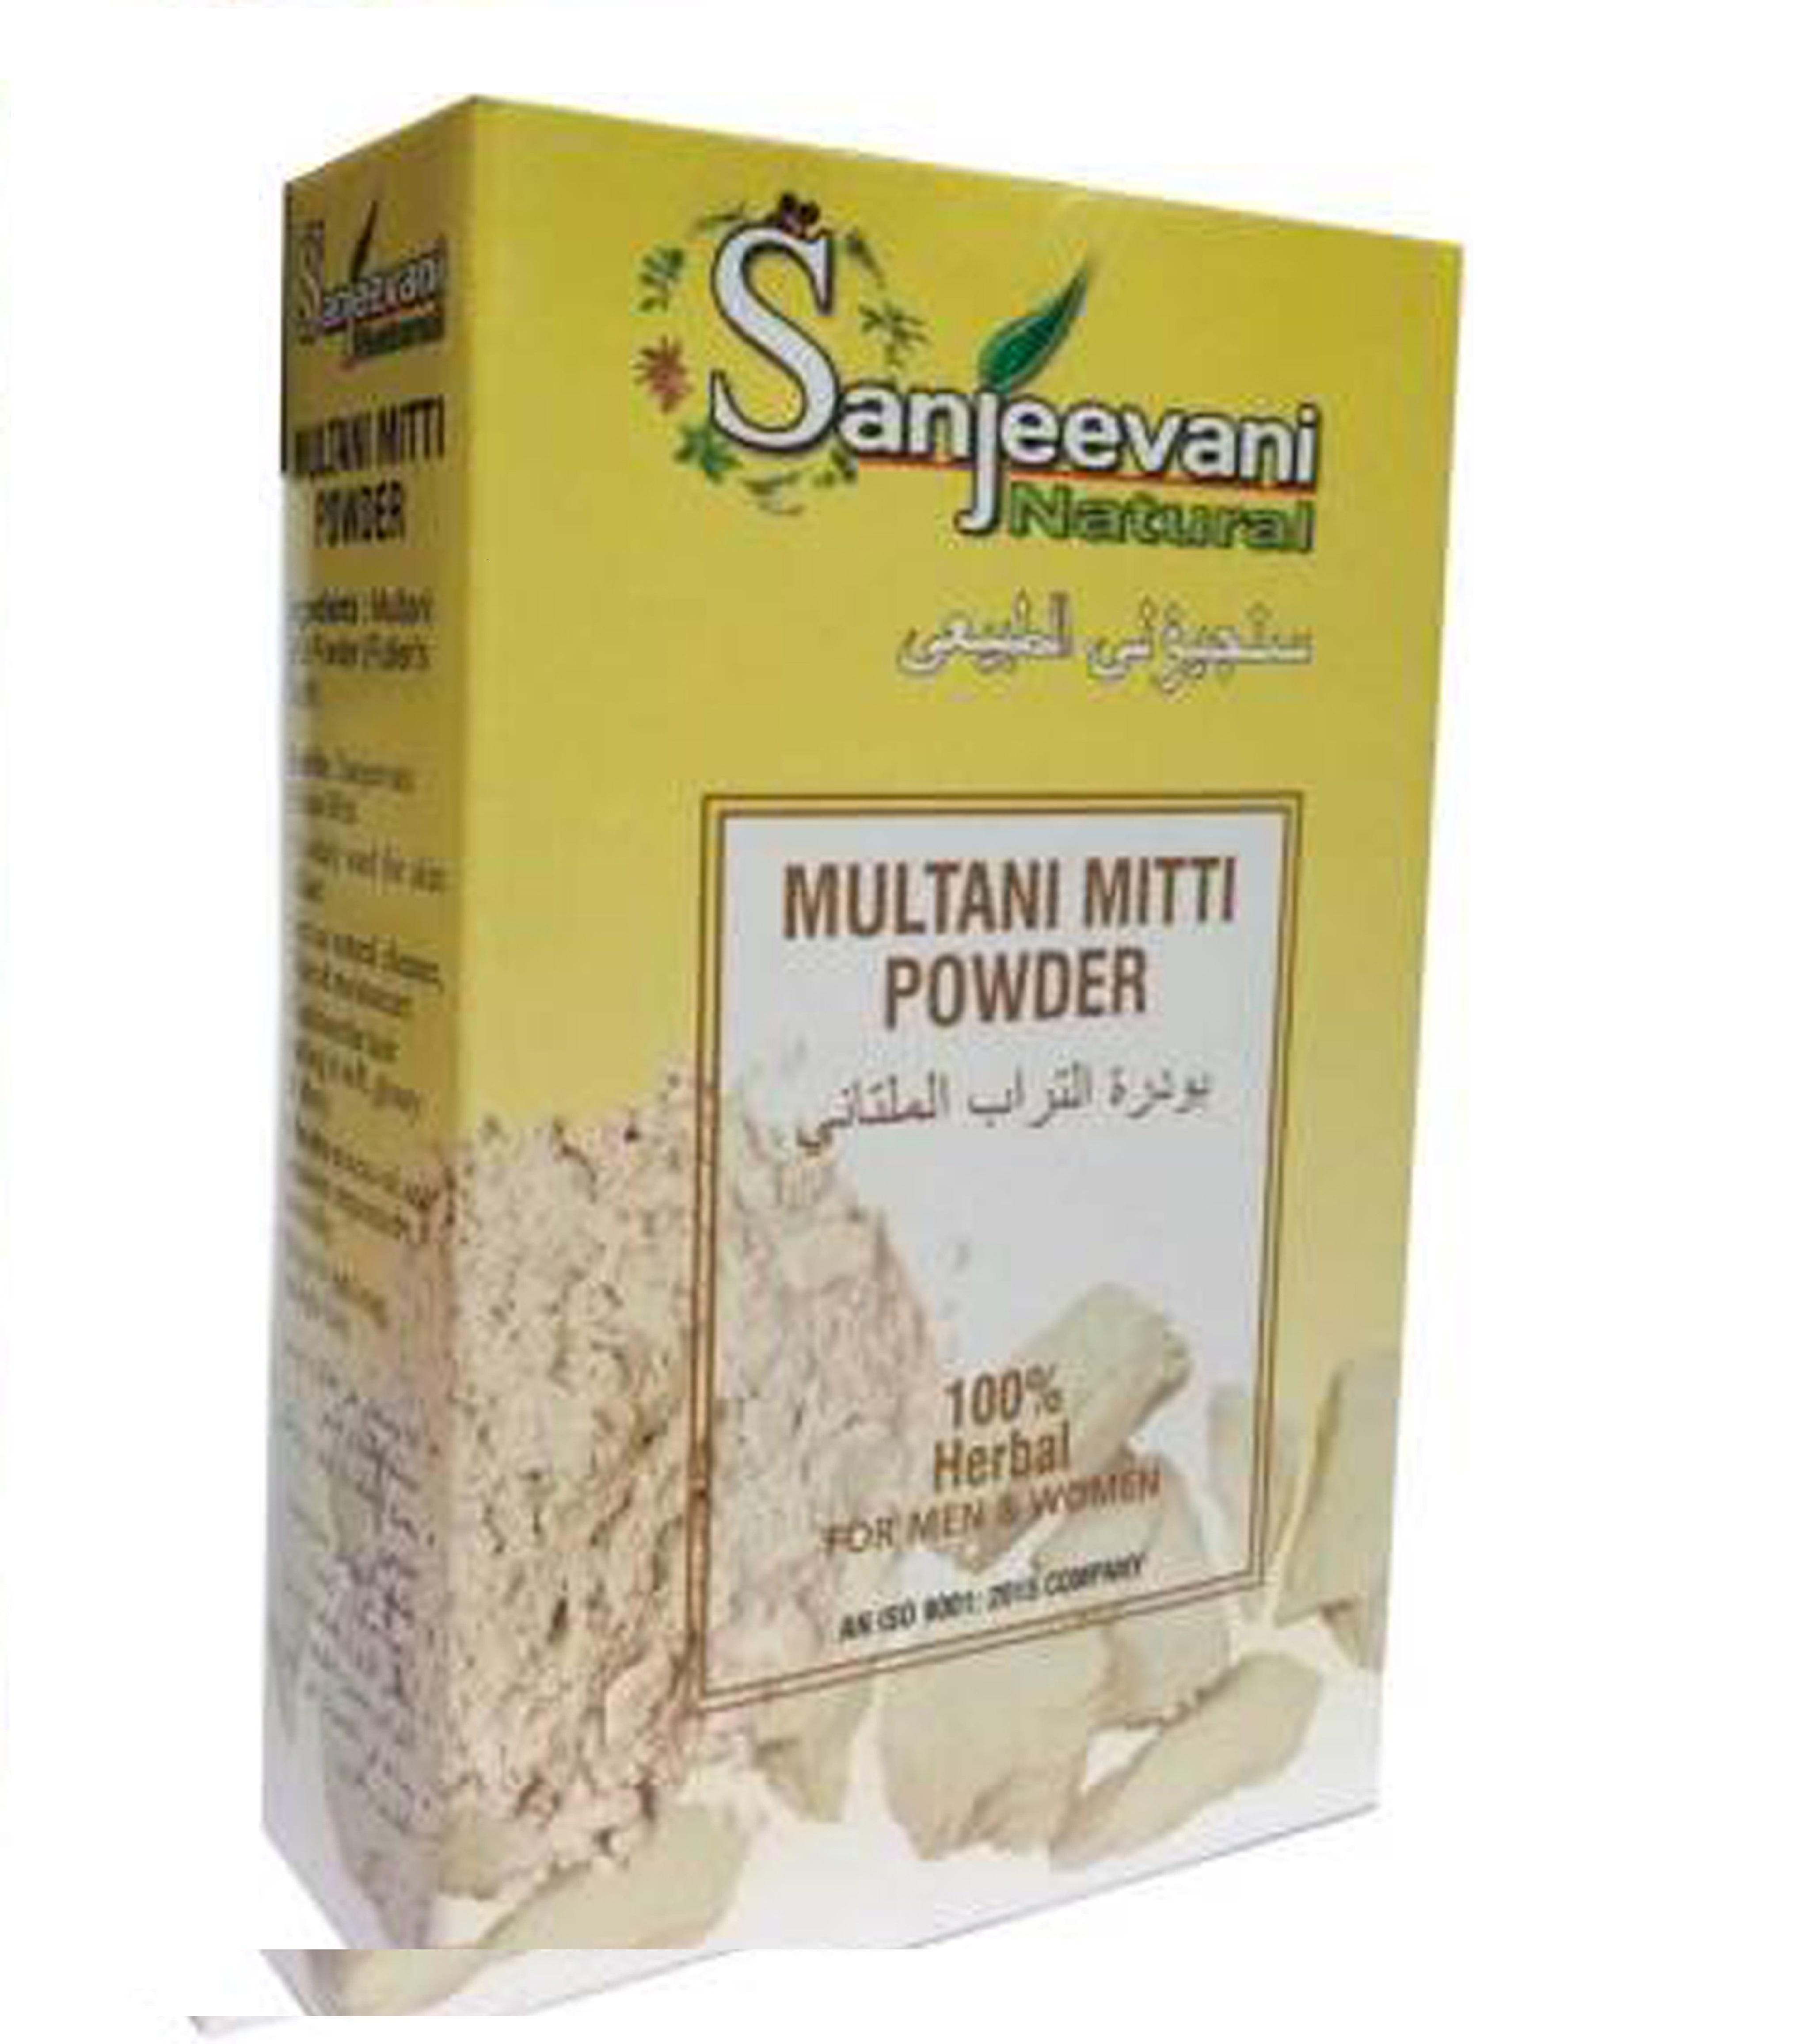 Pure Indian 100% Natural Multani Mitti Powder at Best Price